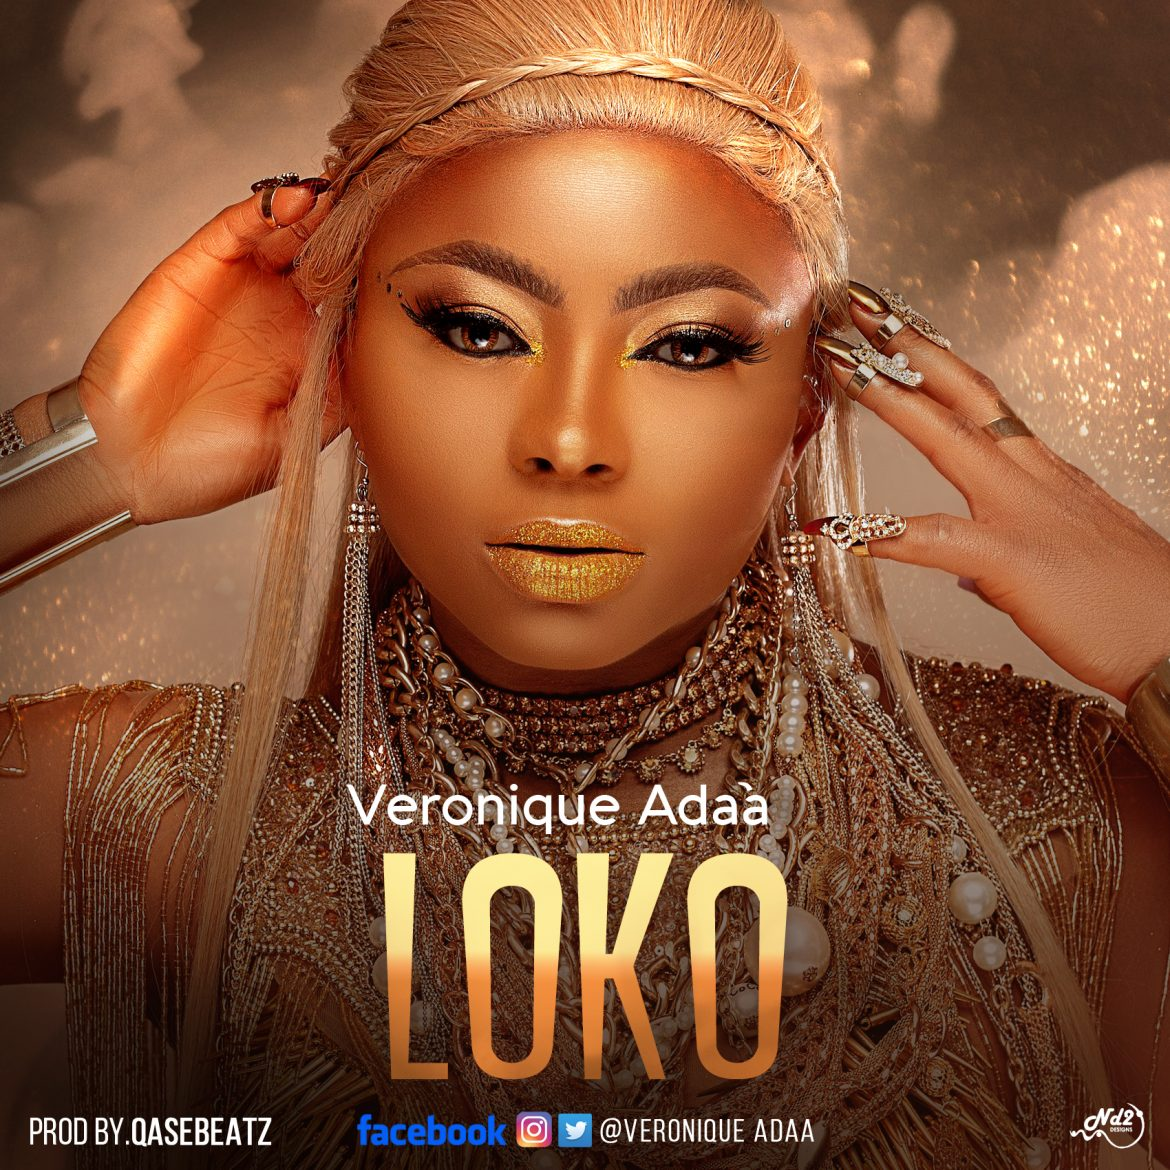 Veronique Adaa – Loko (Produced by Qasebeatz)